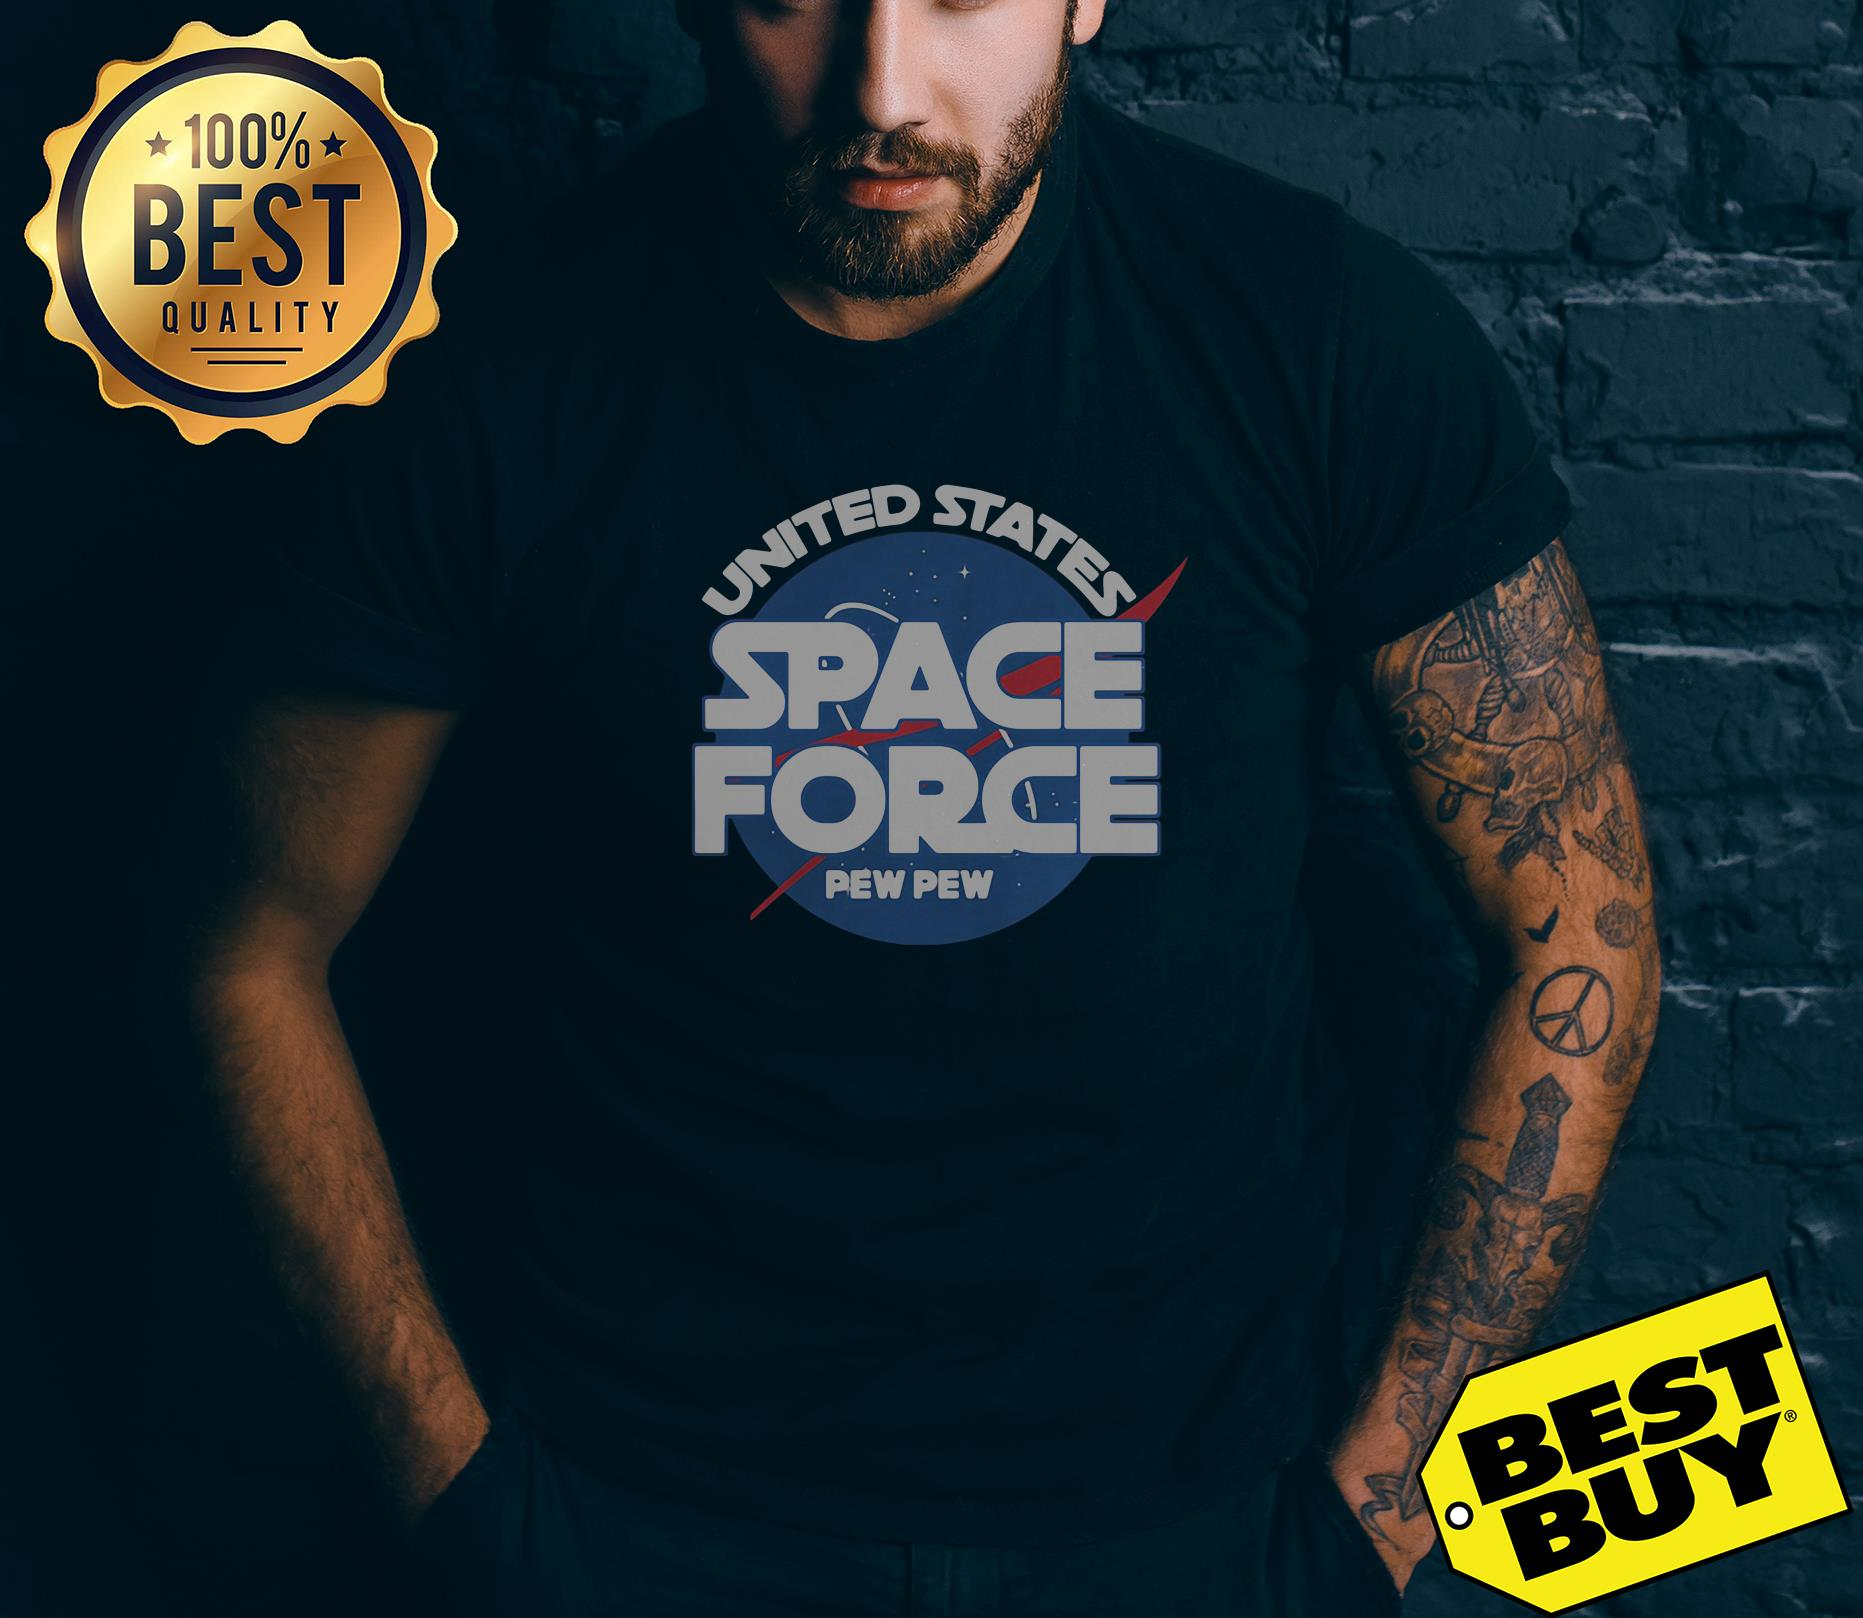 United States Space Force Pew Pew v-neck